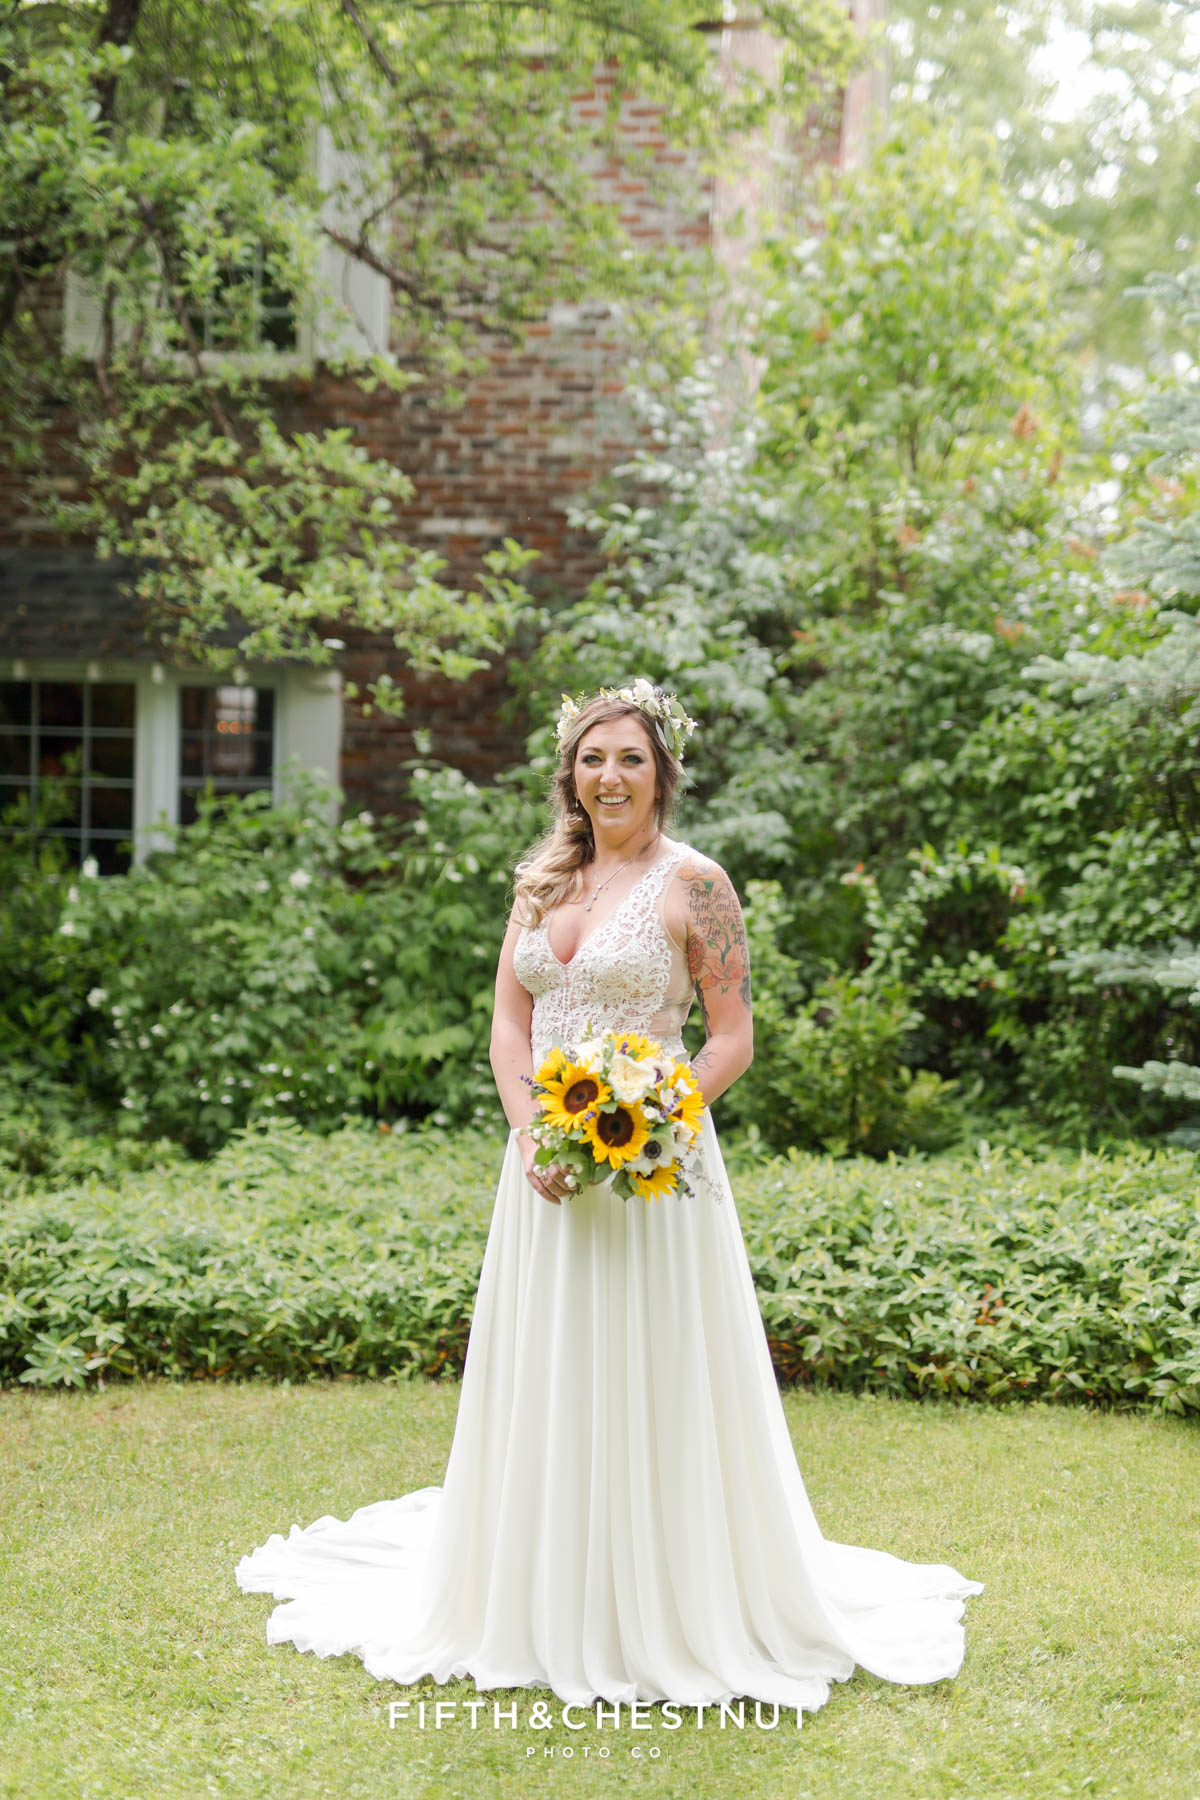 Bride stands in grass in front of farm house at the Twenty Mile house while holding a sunflower bouquet